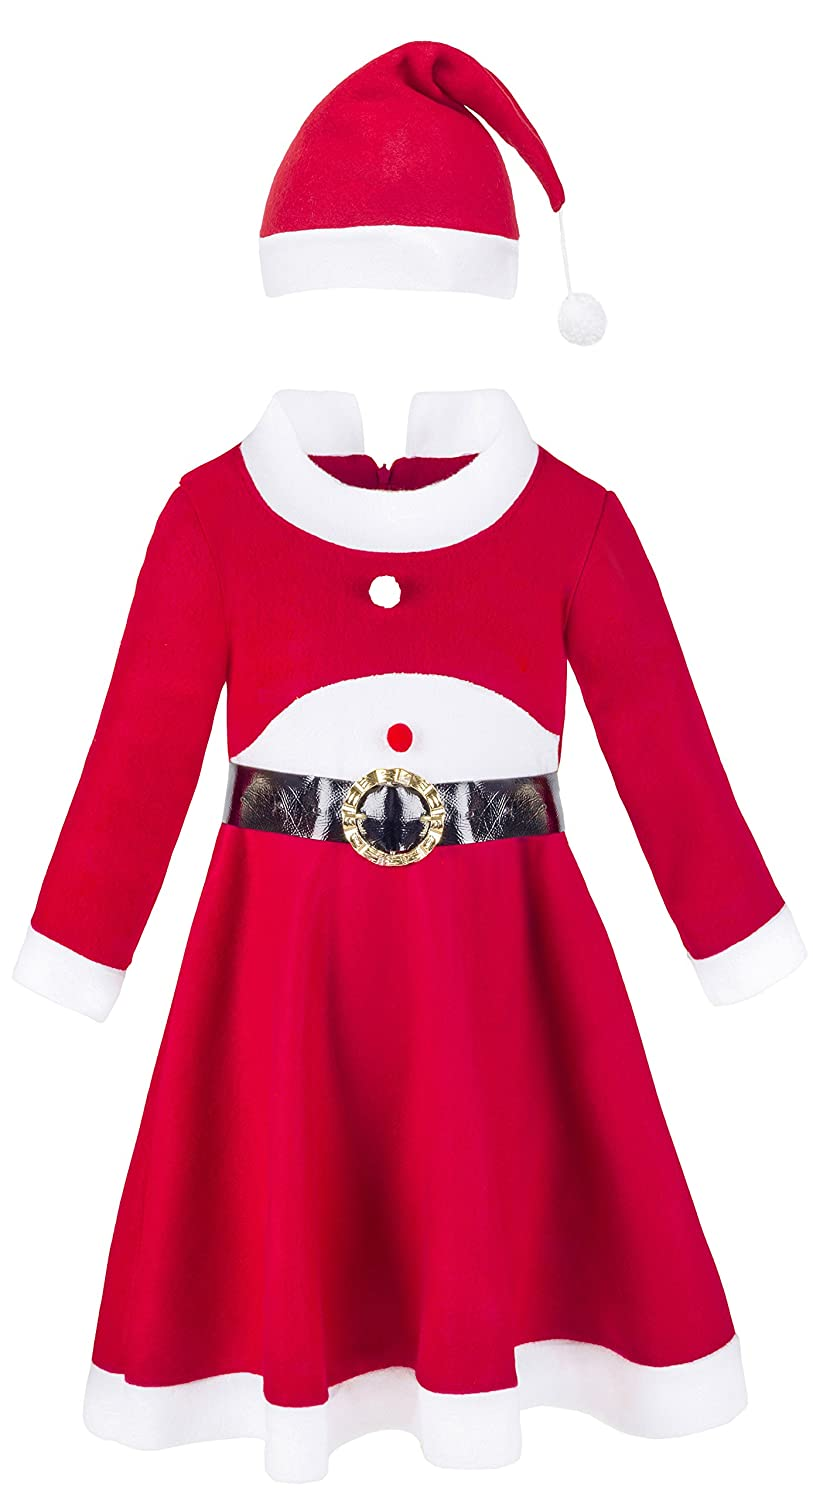 96acdd75b Perfect red fleece Christmas costume dress paired with matching Santa Claus  hat and removable black belt with gold buckle. Collared neckline, long  sleeve ...